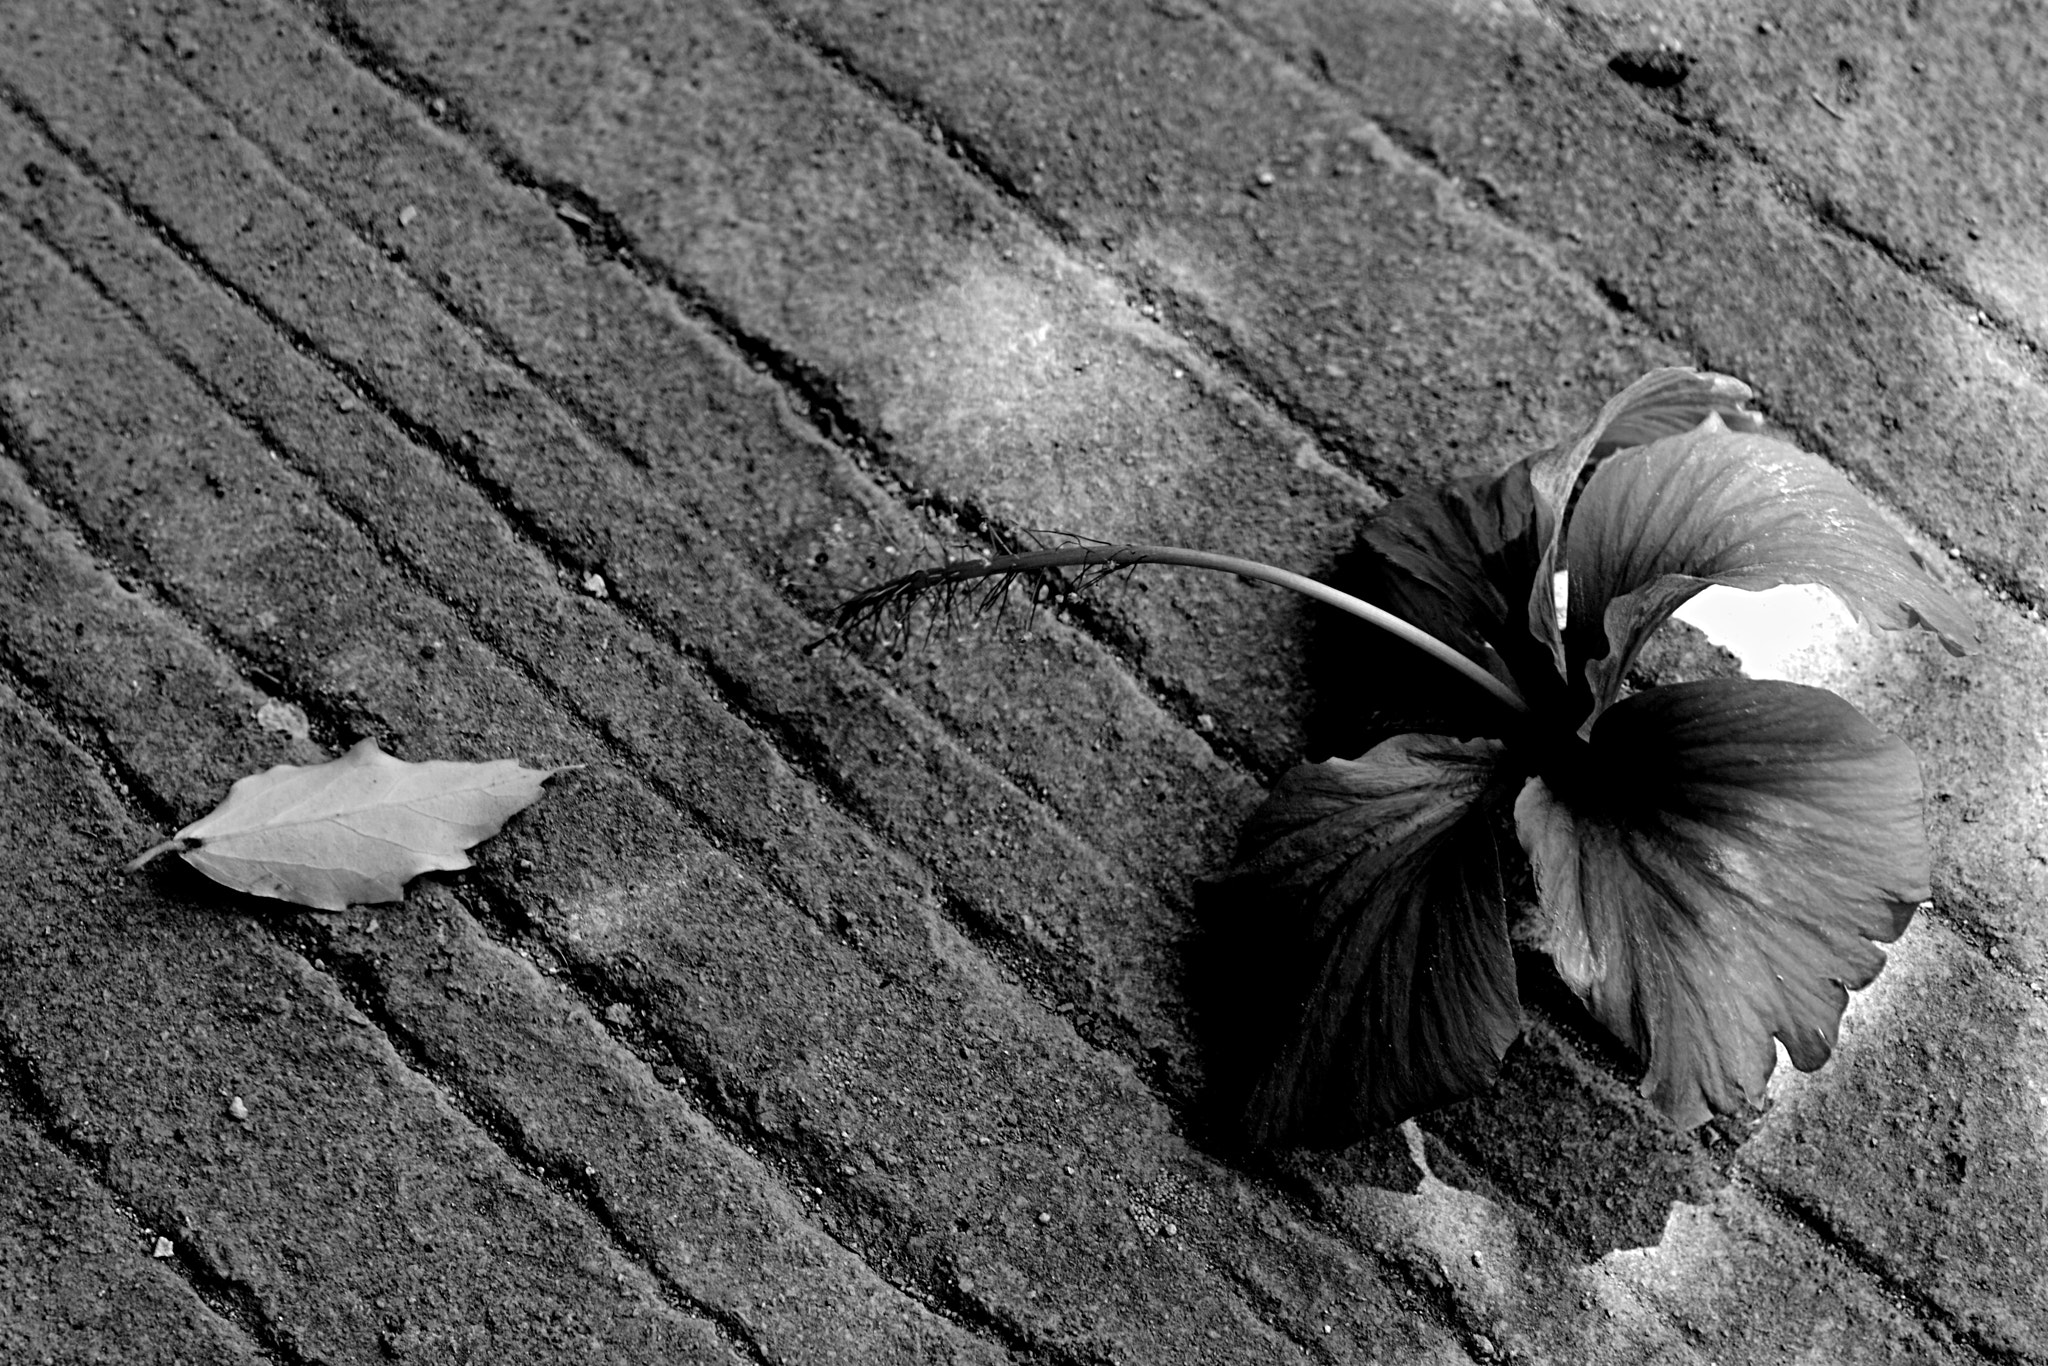 Photograph wasted and wounded on the ground by Sinta Dian on 500px